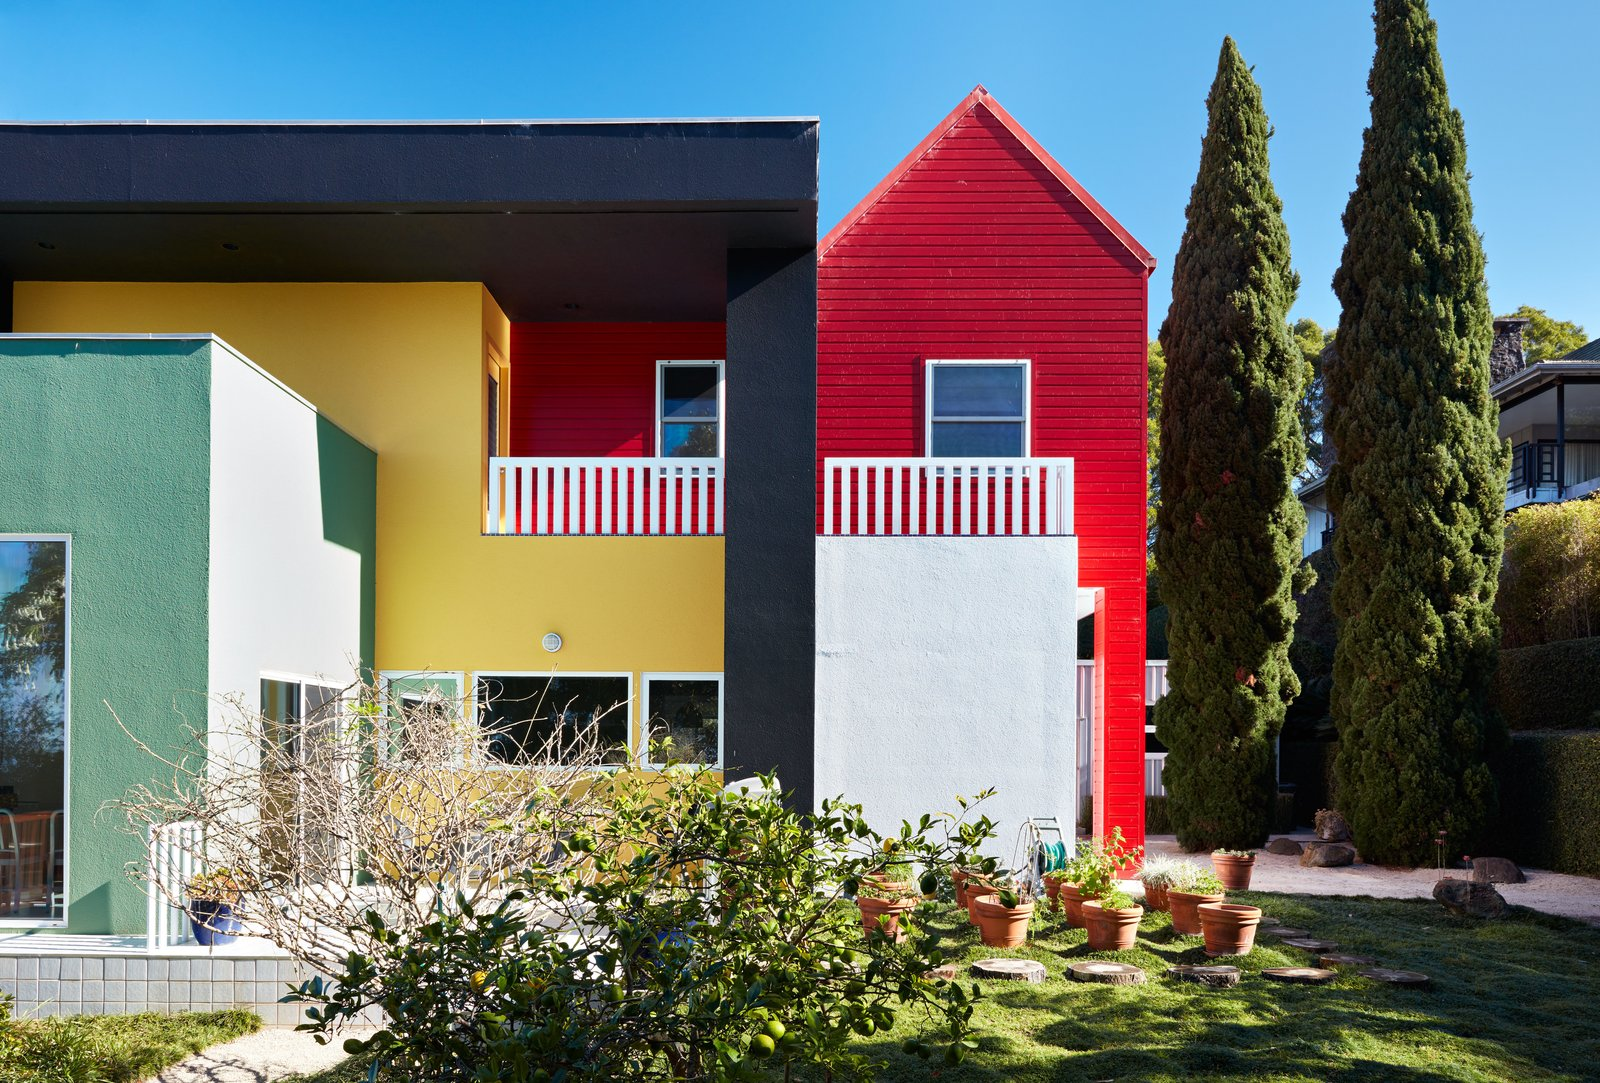 """Outdoor and Grass Though seemingly whimsical and freewheeling, Sottsass was exacting in his designs: He had forbidden the Olabuenagas from repainting the home's stucco facade, insisting that they let it """"metamorph into what it wants to be,"""" but the couple ultimately decided to restore its faded colors last fall, using new elastomeric Behr paints that were blended to original specifications.  Best Photos from Thank Sottsass for the Most Memphis House Imaginable"""